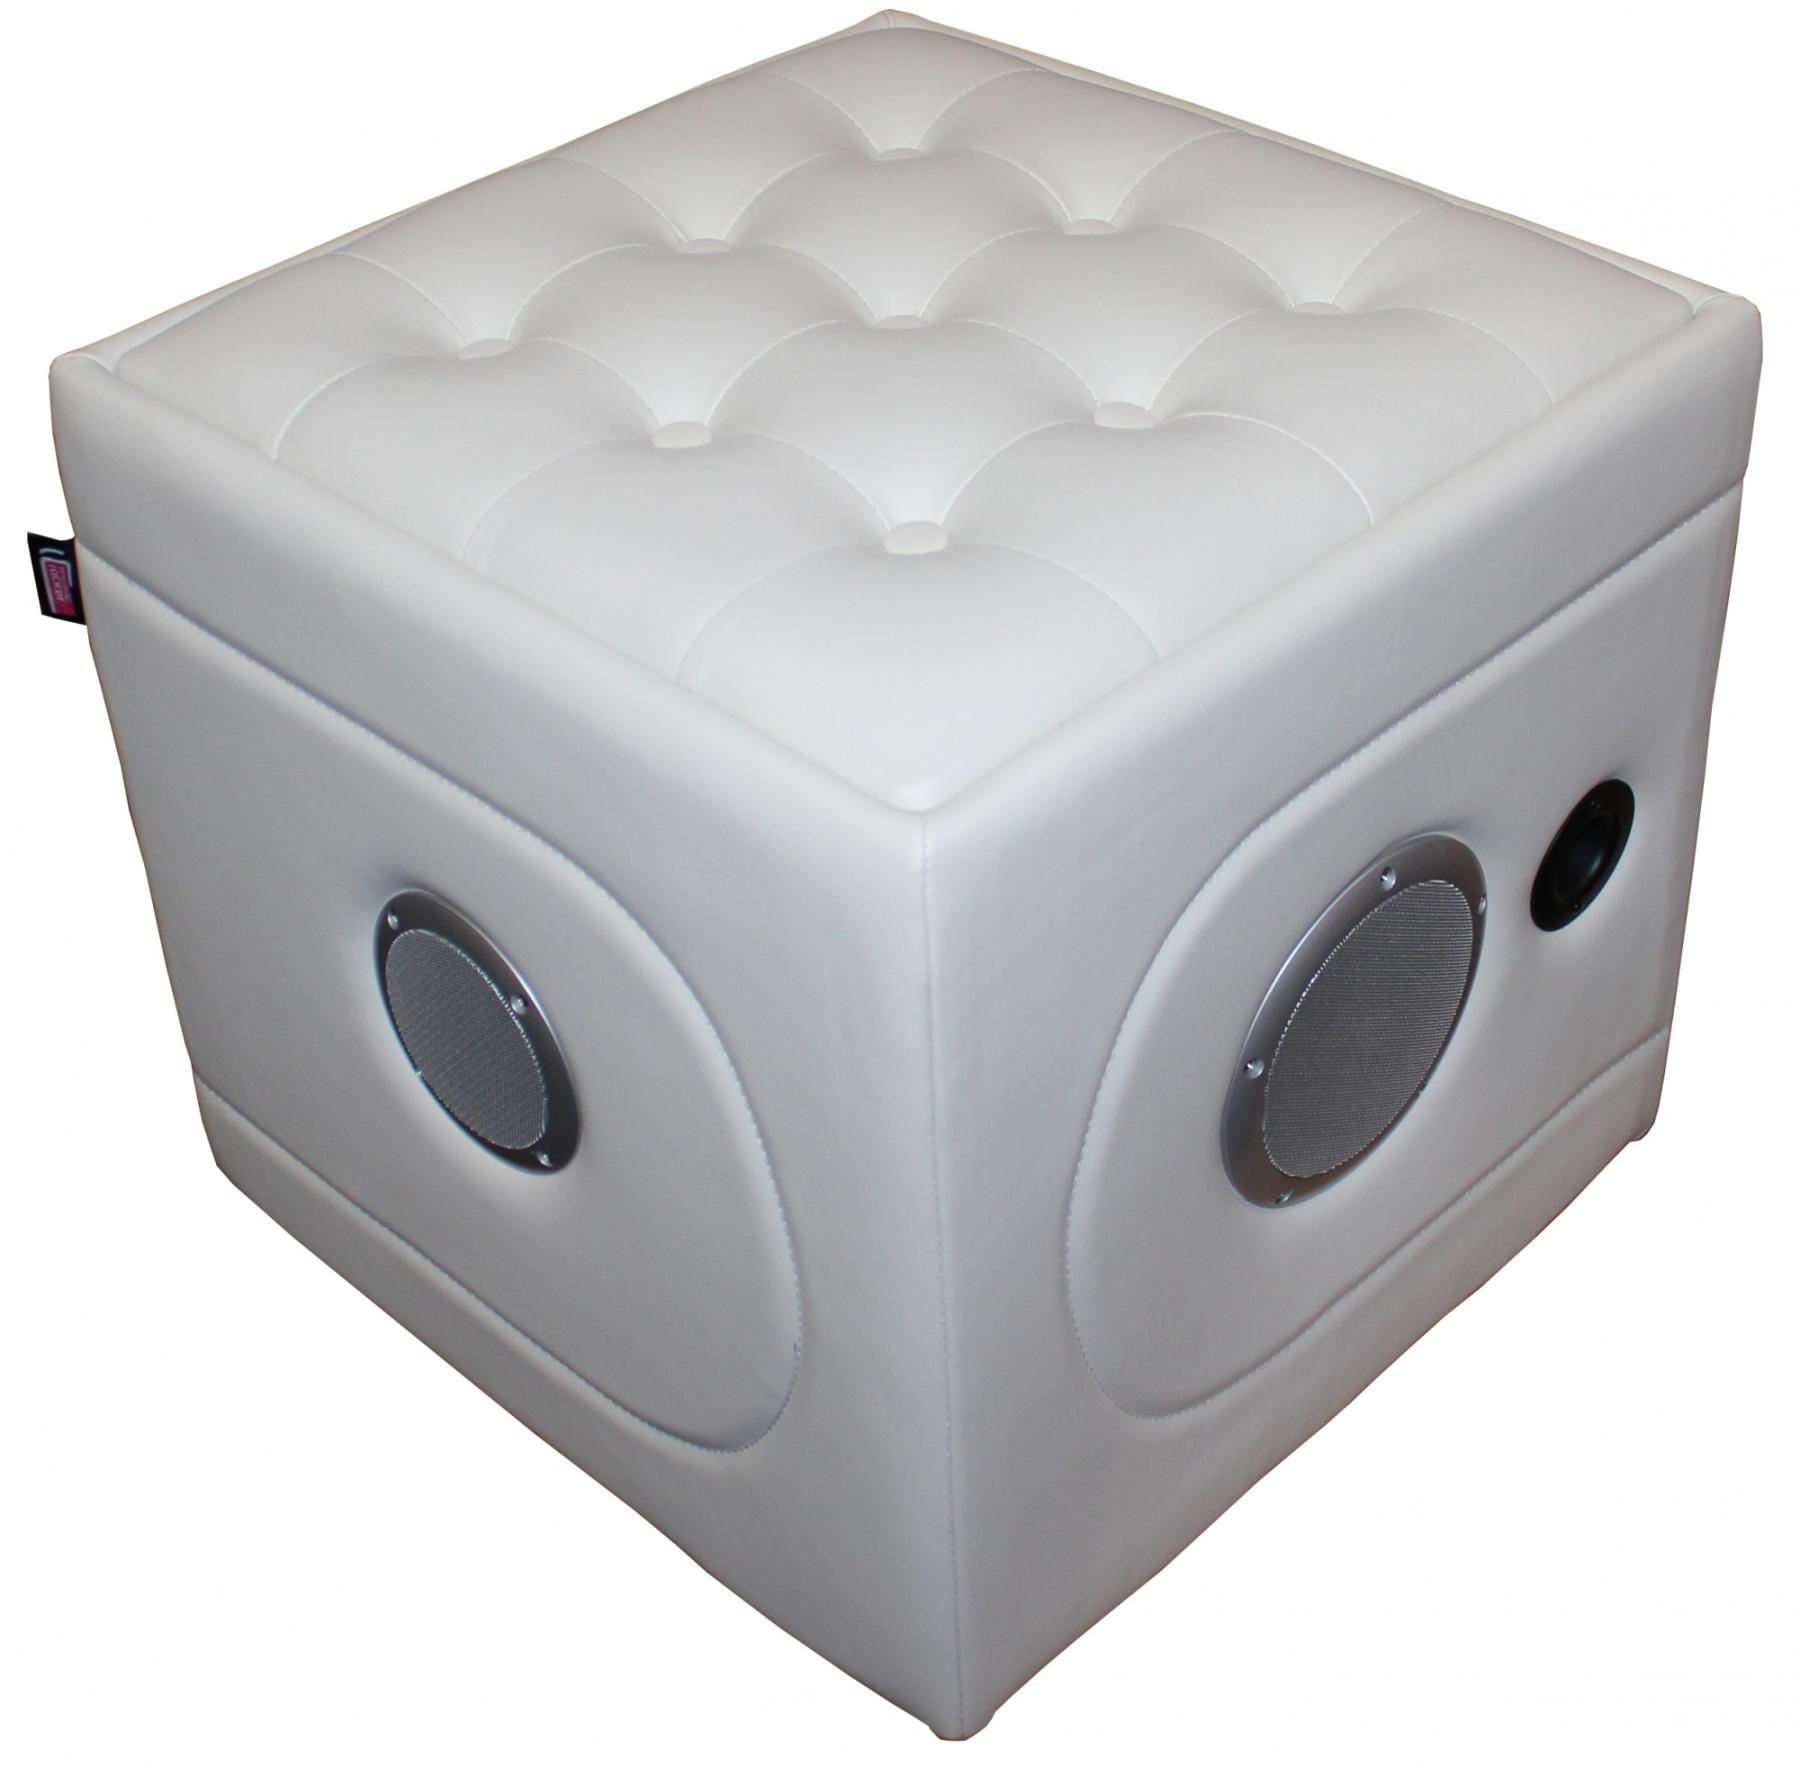 Hocker Würfel Multimediahocker Sitz Würfel Cube Hocker Soundhocker